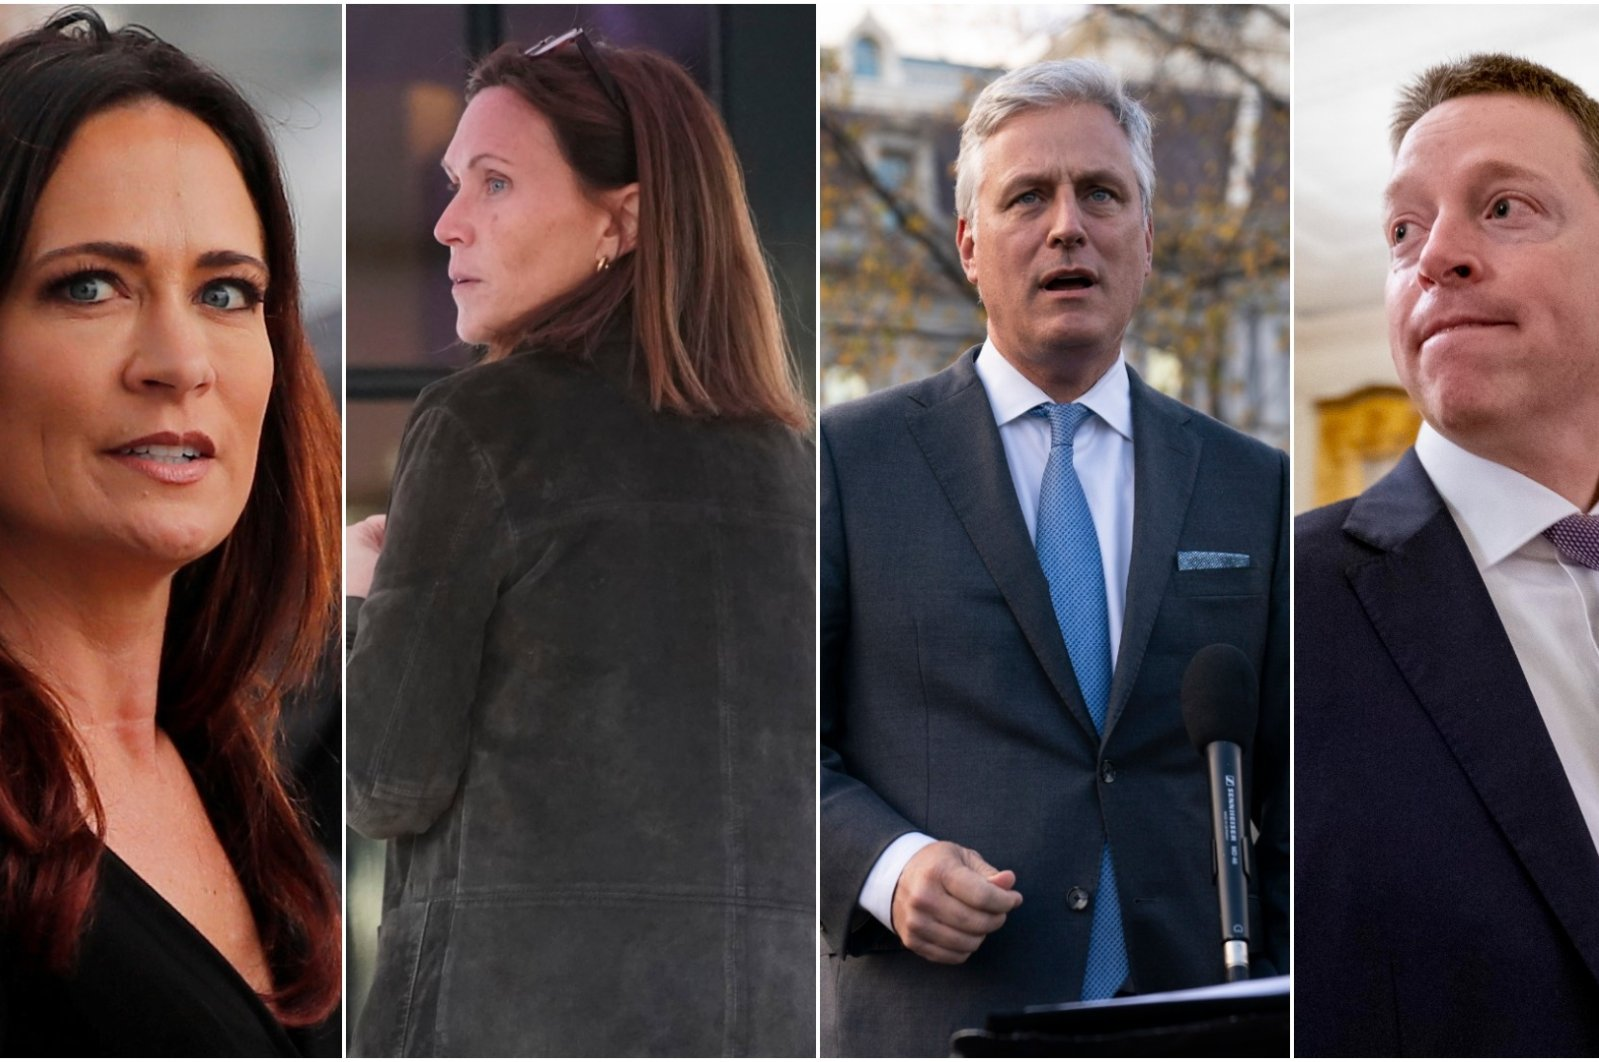 Photo shows (L-R) Stephanie Grisham, former chief of staff to the first lady, Rickie Nieta, former White House social secretary, and national security adviser Robert O'Brien and his deputy, Matthew Pottinger.